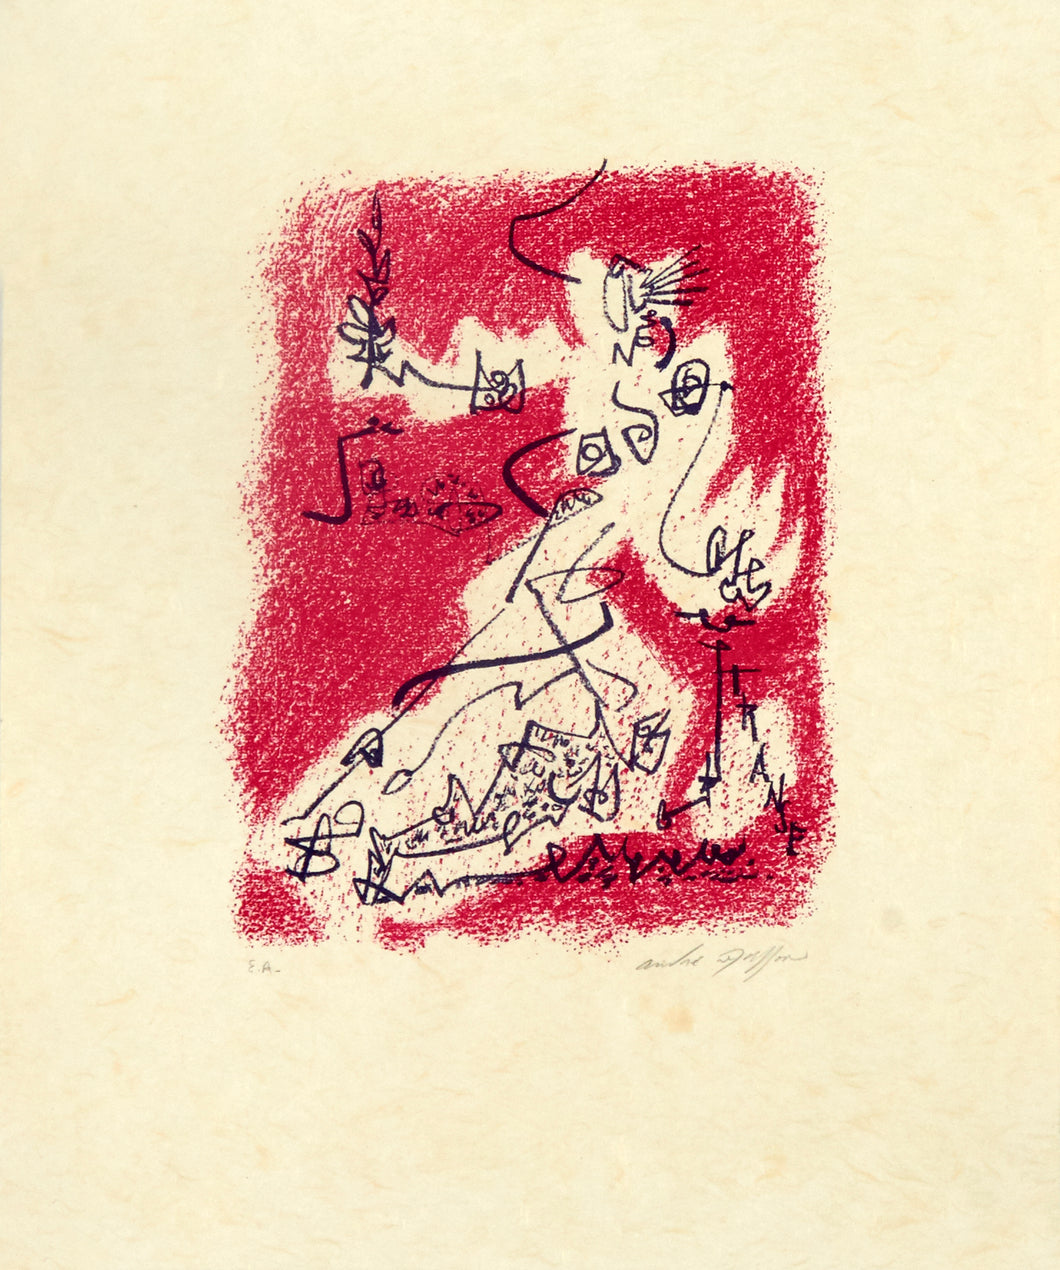 "Le départ from the book ""Souvenirs d'artiste/s"" by André Masson 1972"